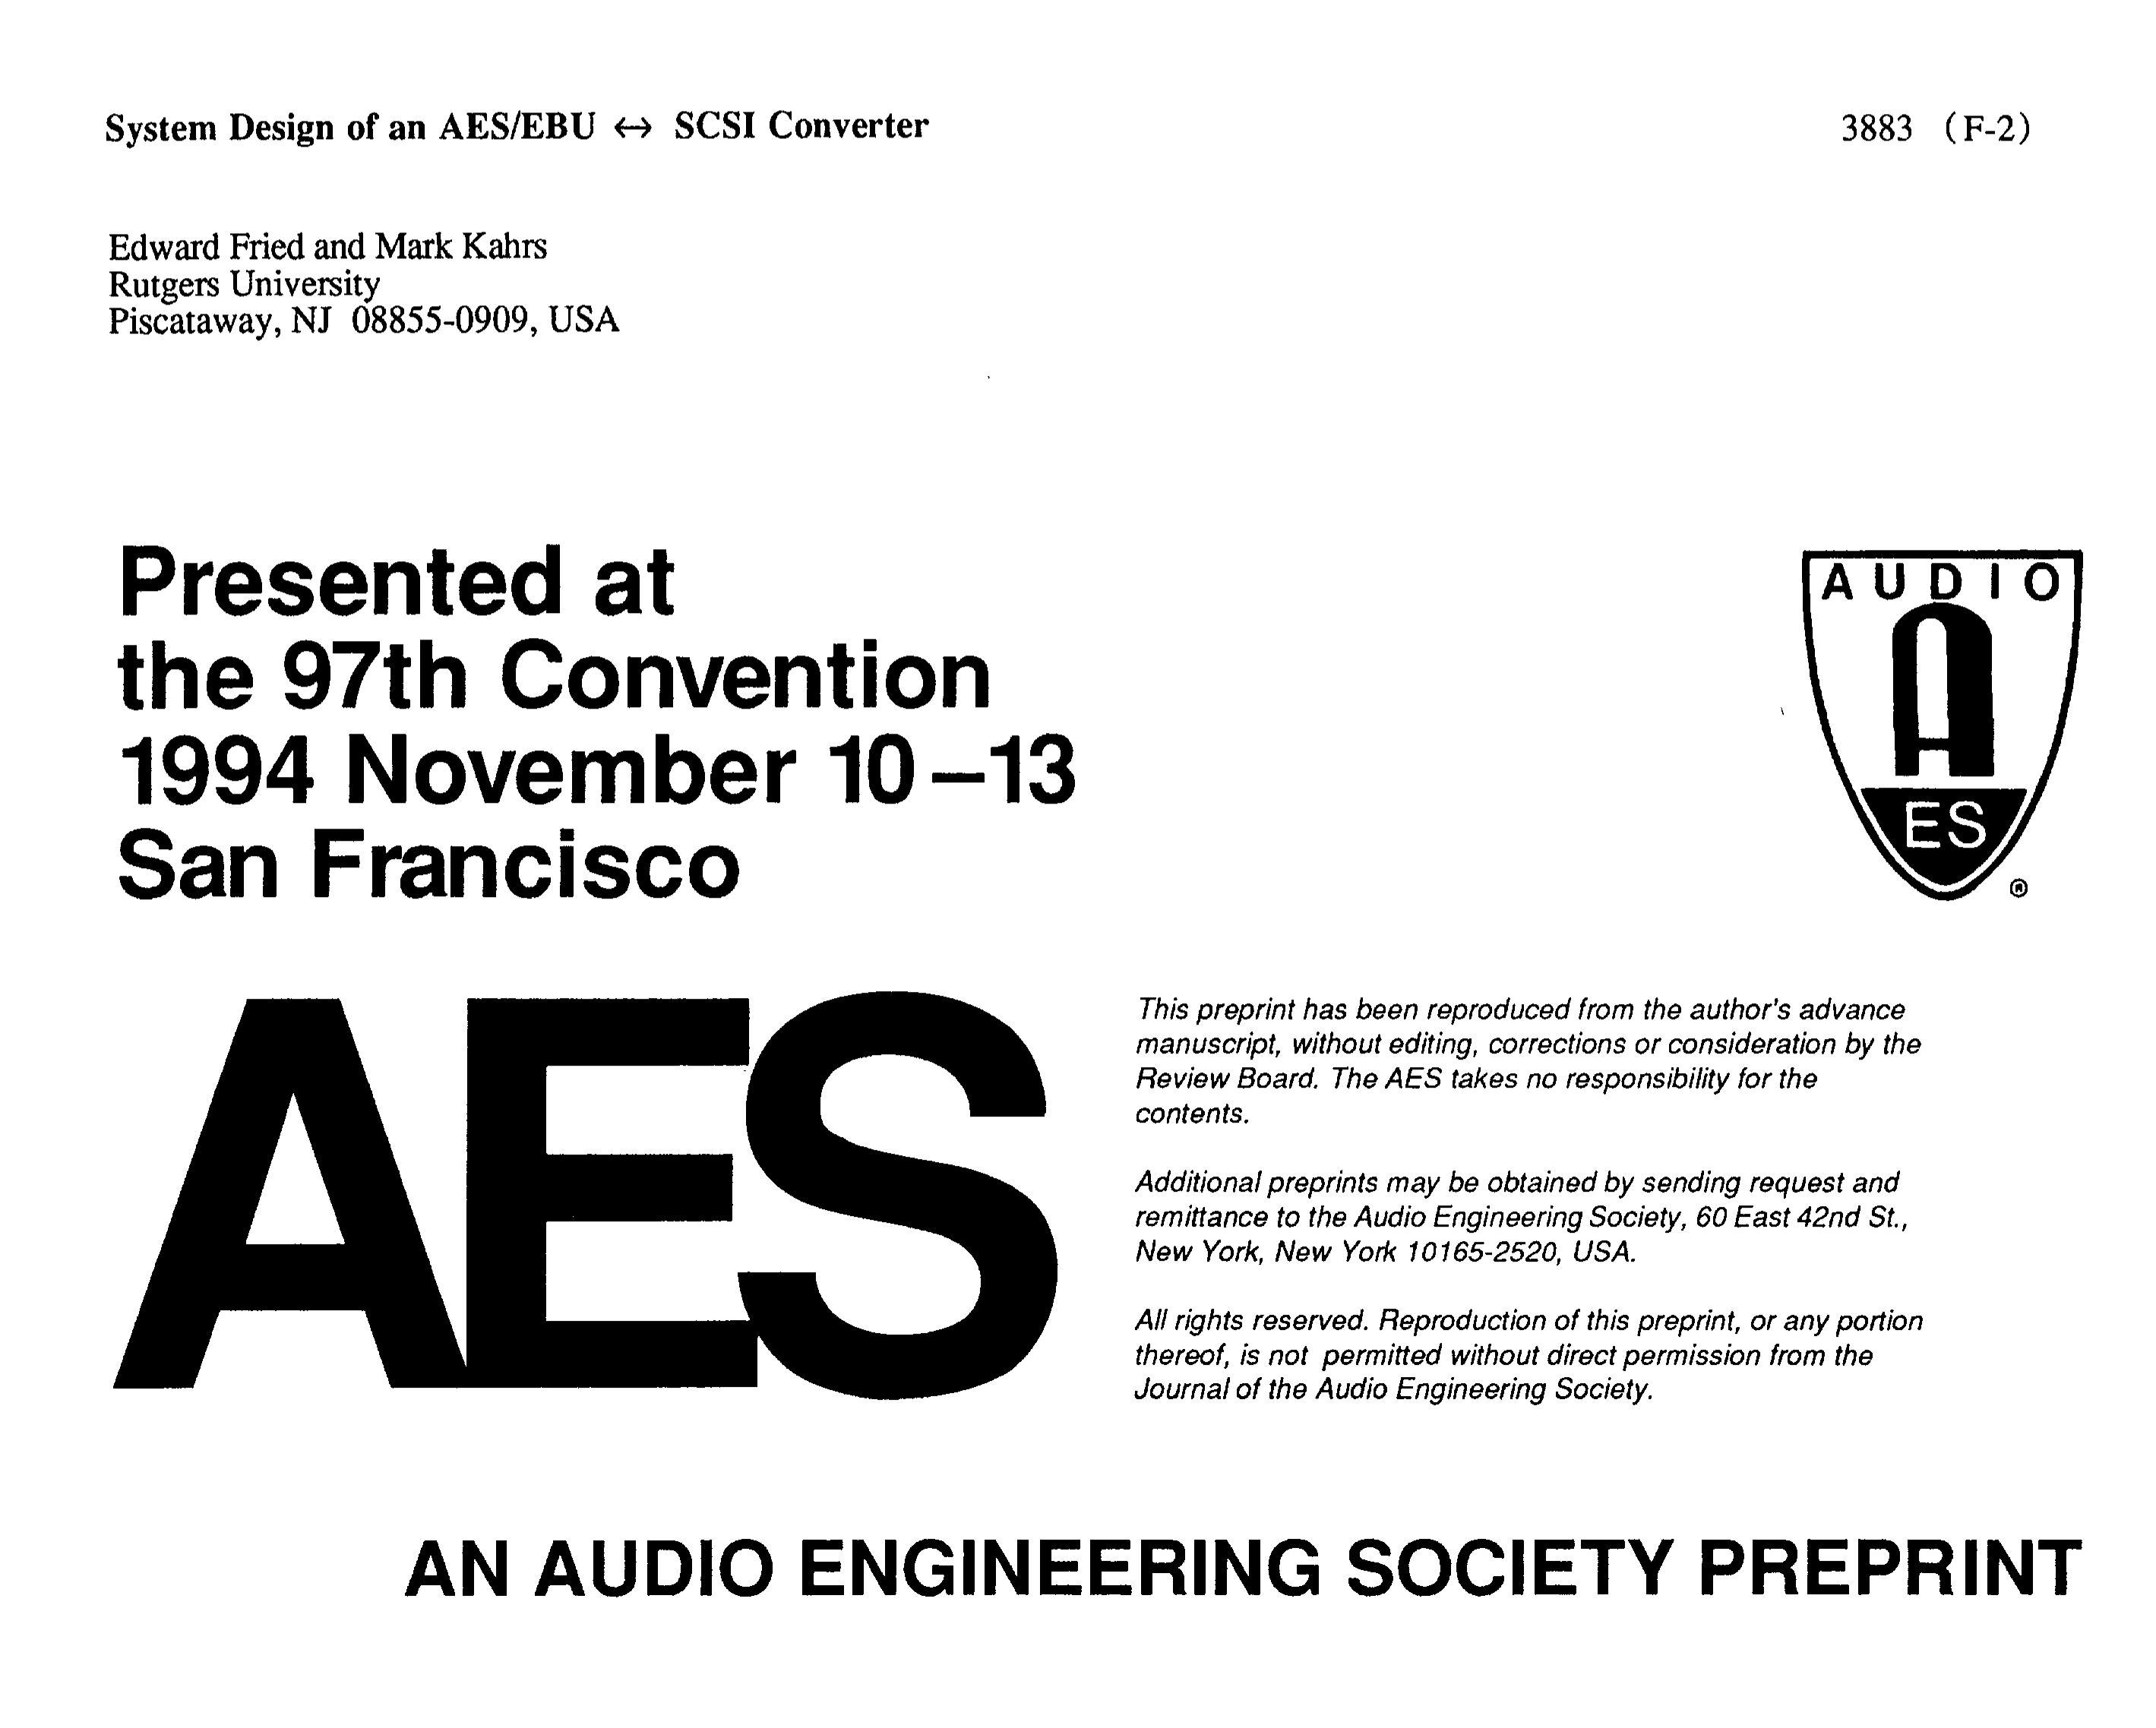 AES E-Library » System Design of an AES/EBU SCSI Converter